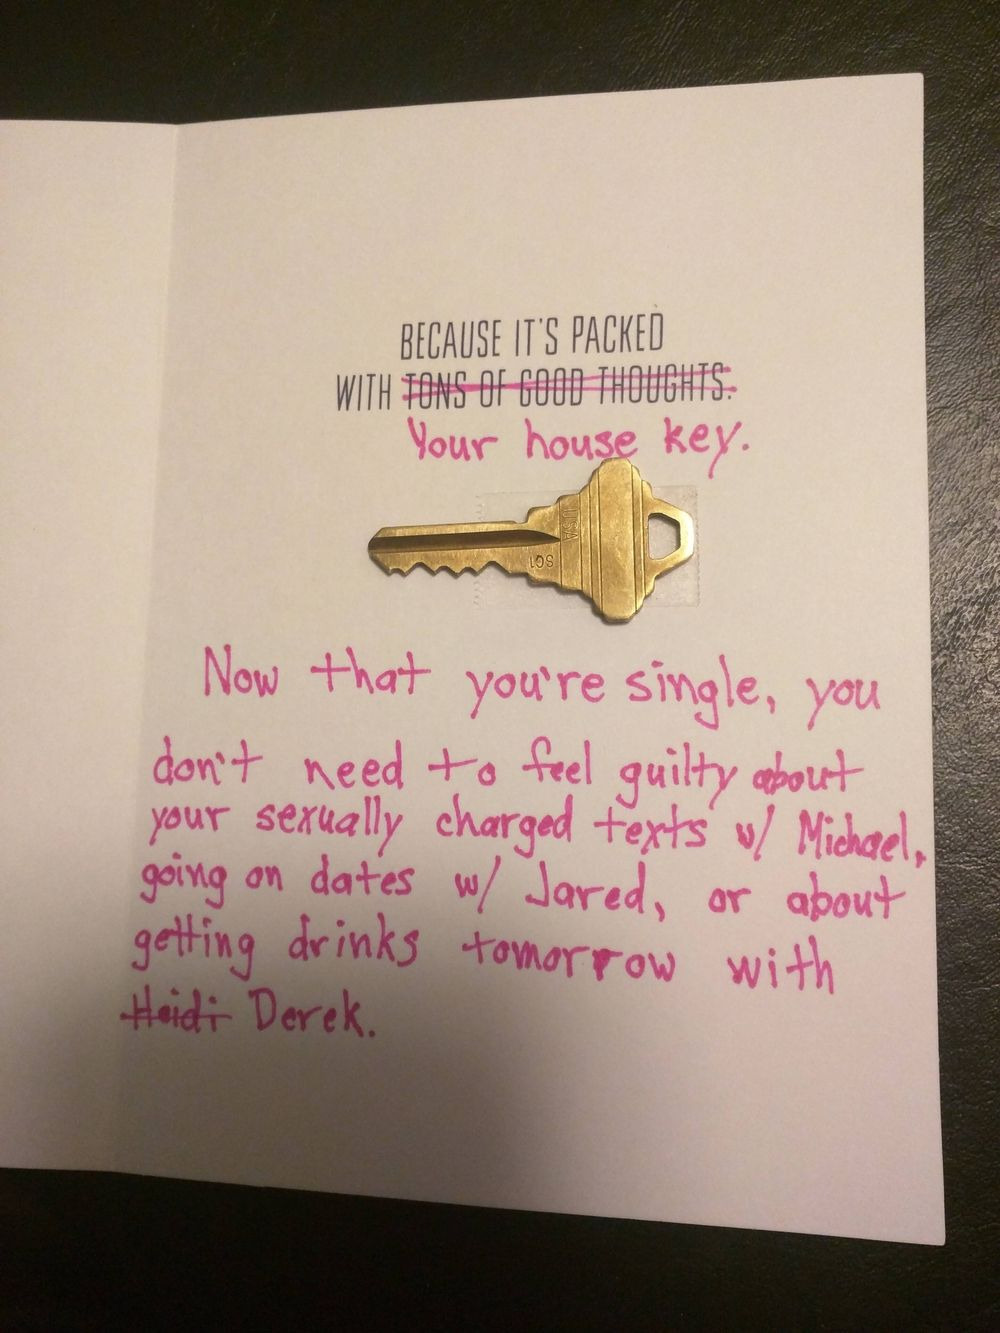 Guy being cheated on gets revenge in a birthday card